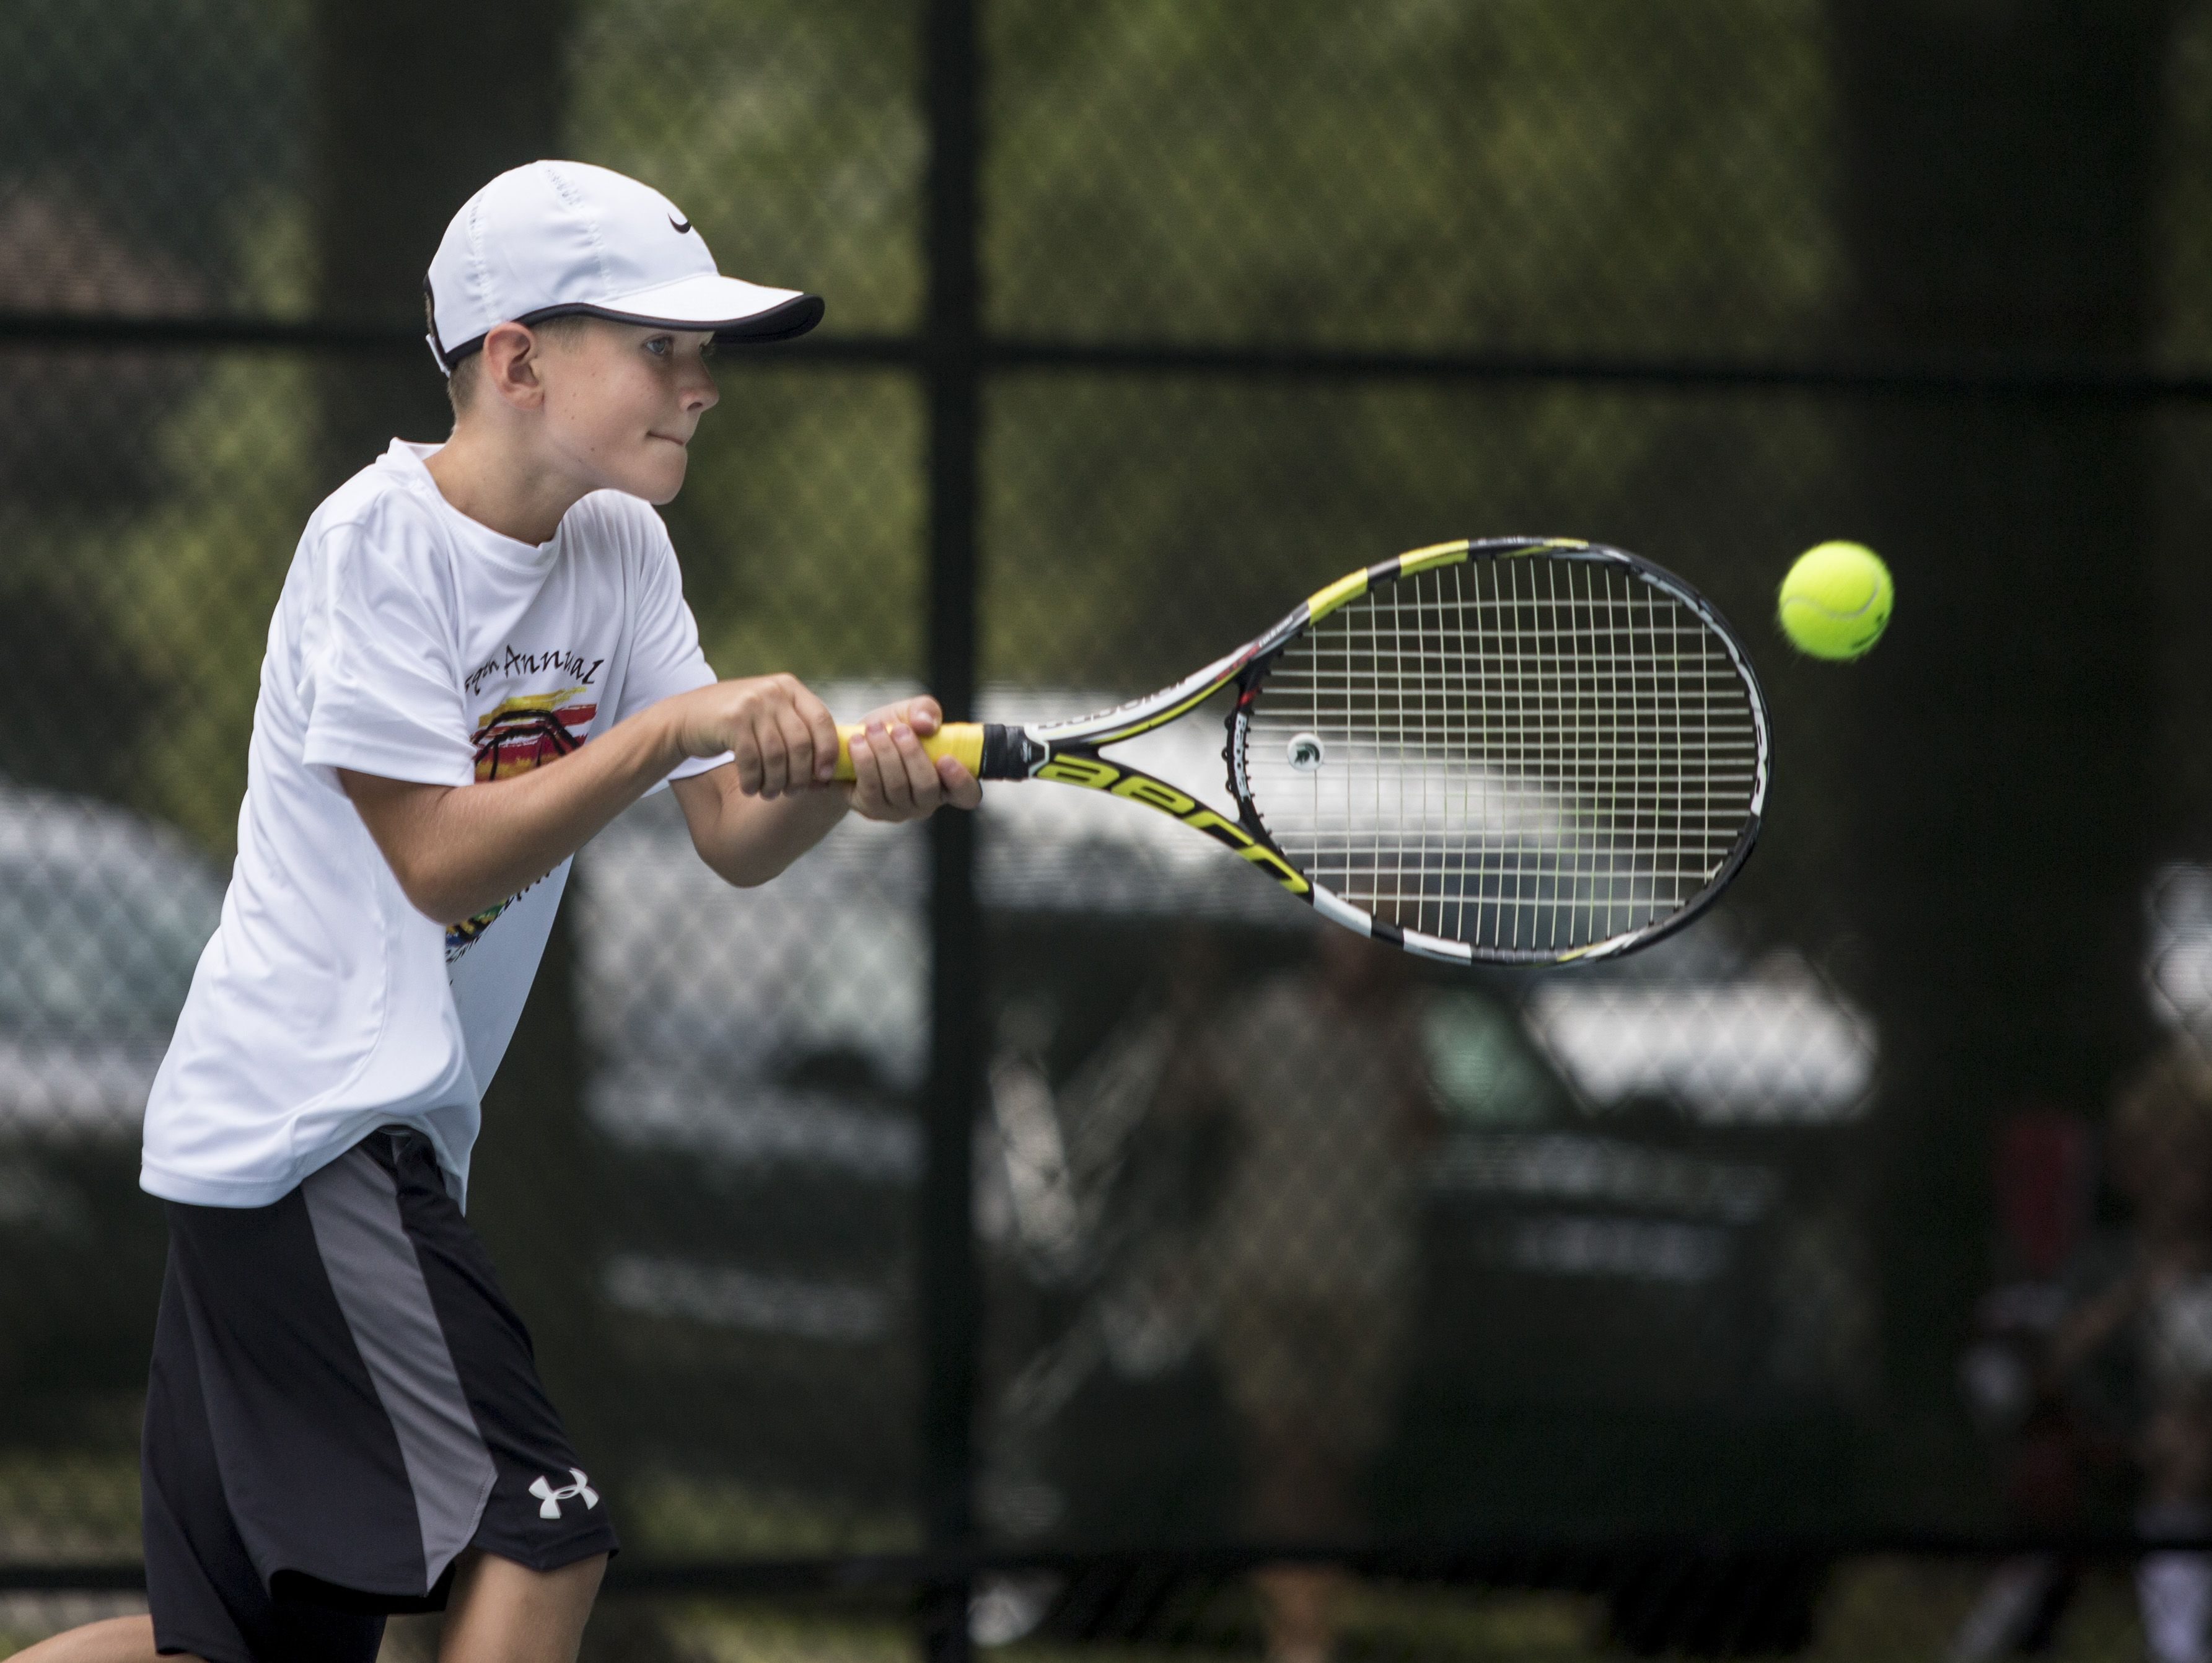 Dylan Distelrath, 10, of St. Clair, returns the ball during the Francis J. Robinson Memorial International Tennis Tournament Friday, August 5, 2016 at Sanborn Park in Port Huron.